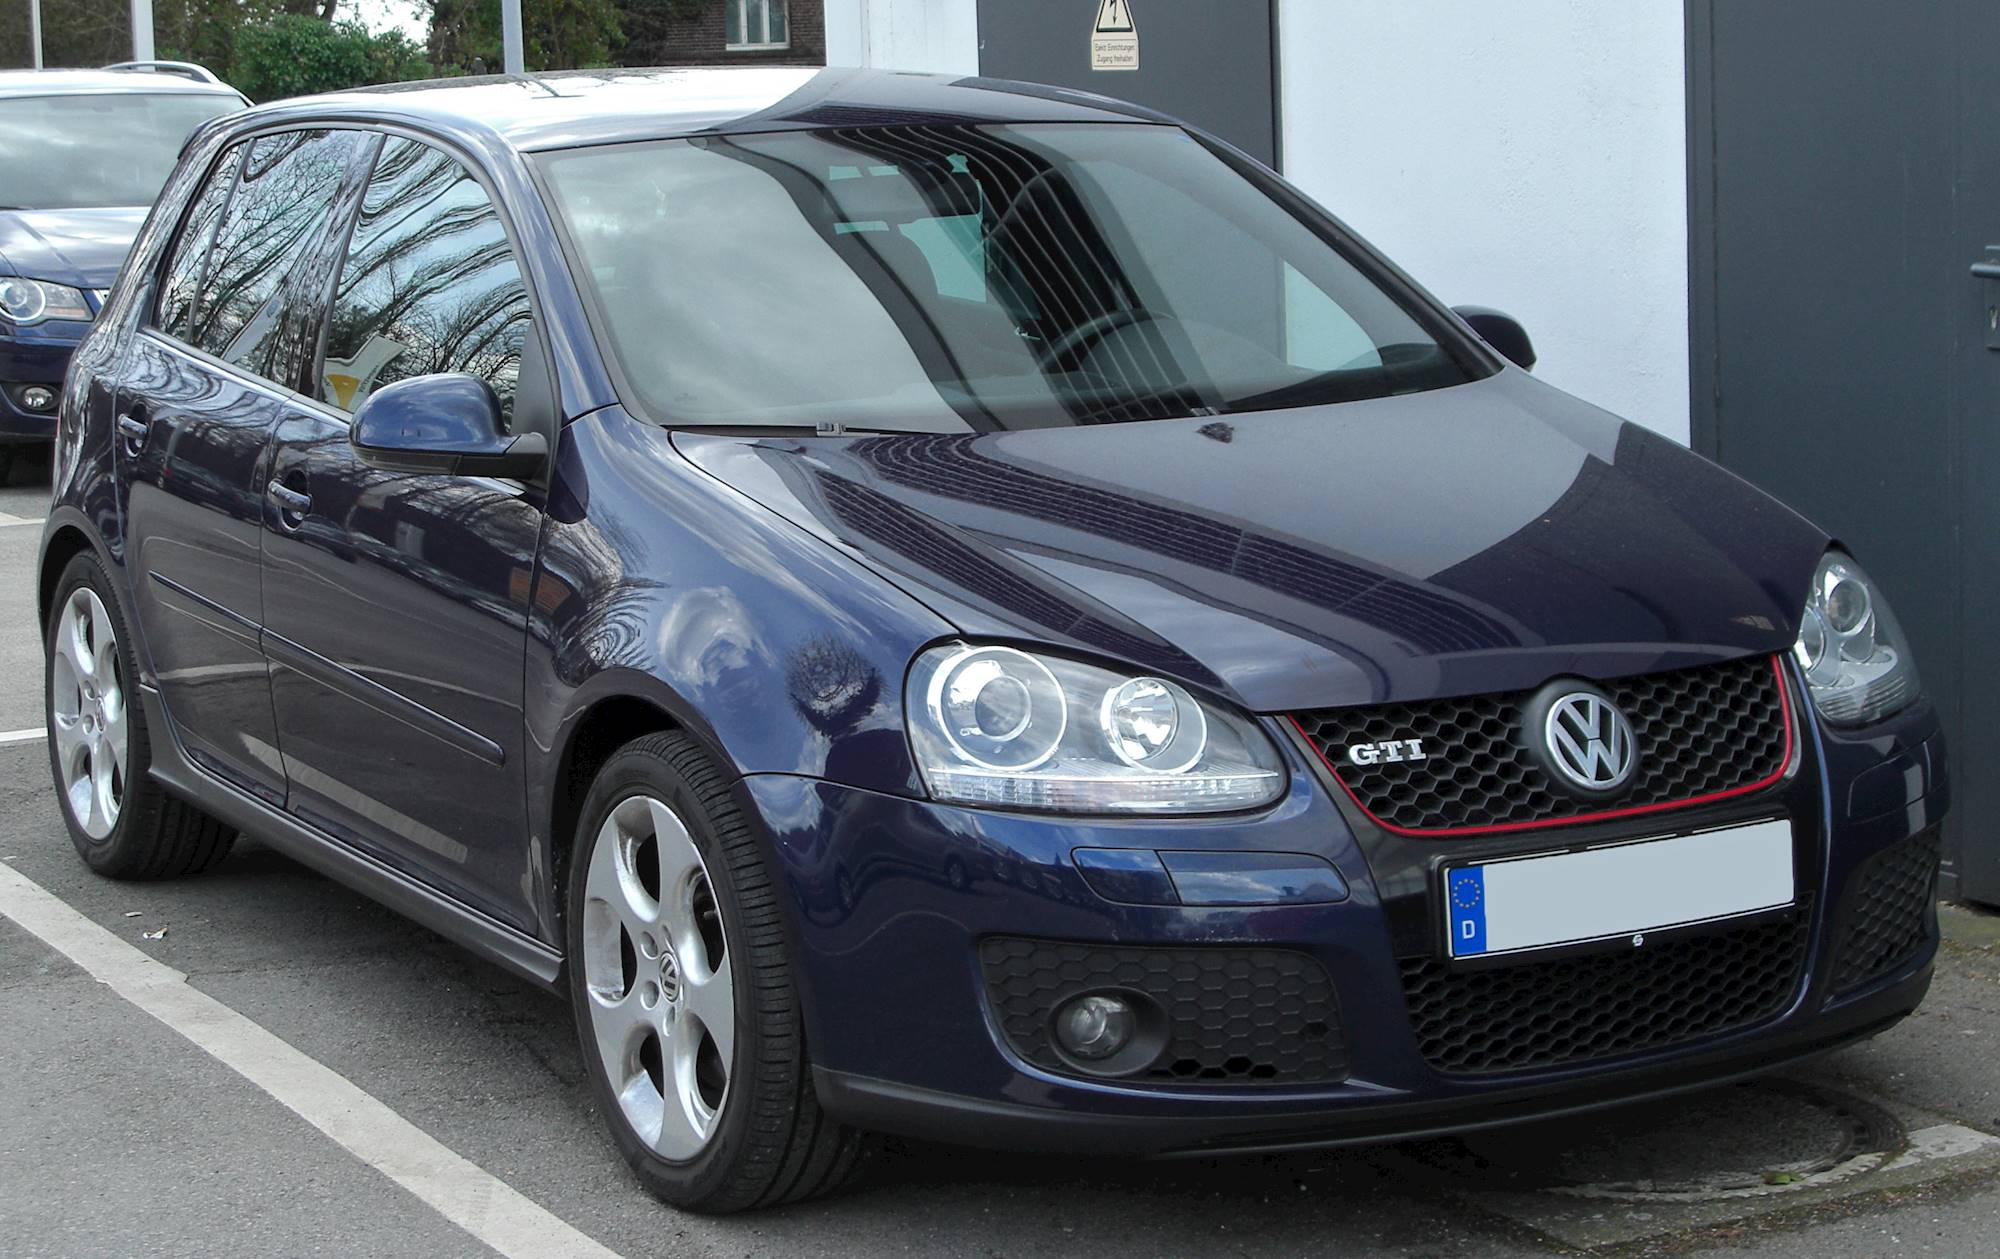 Vw Gti 0 60 >> 2004 Volkswagen Golf Gti 1 8t 2dr Hatchback 1 8l Turbo Manual